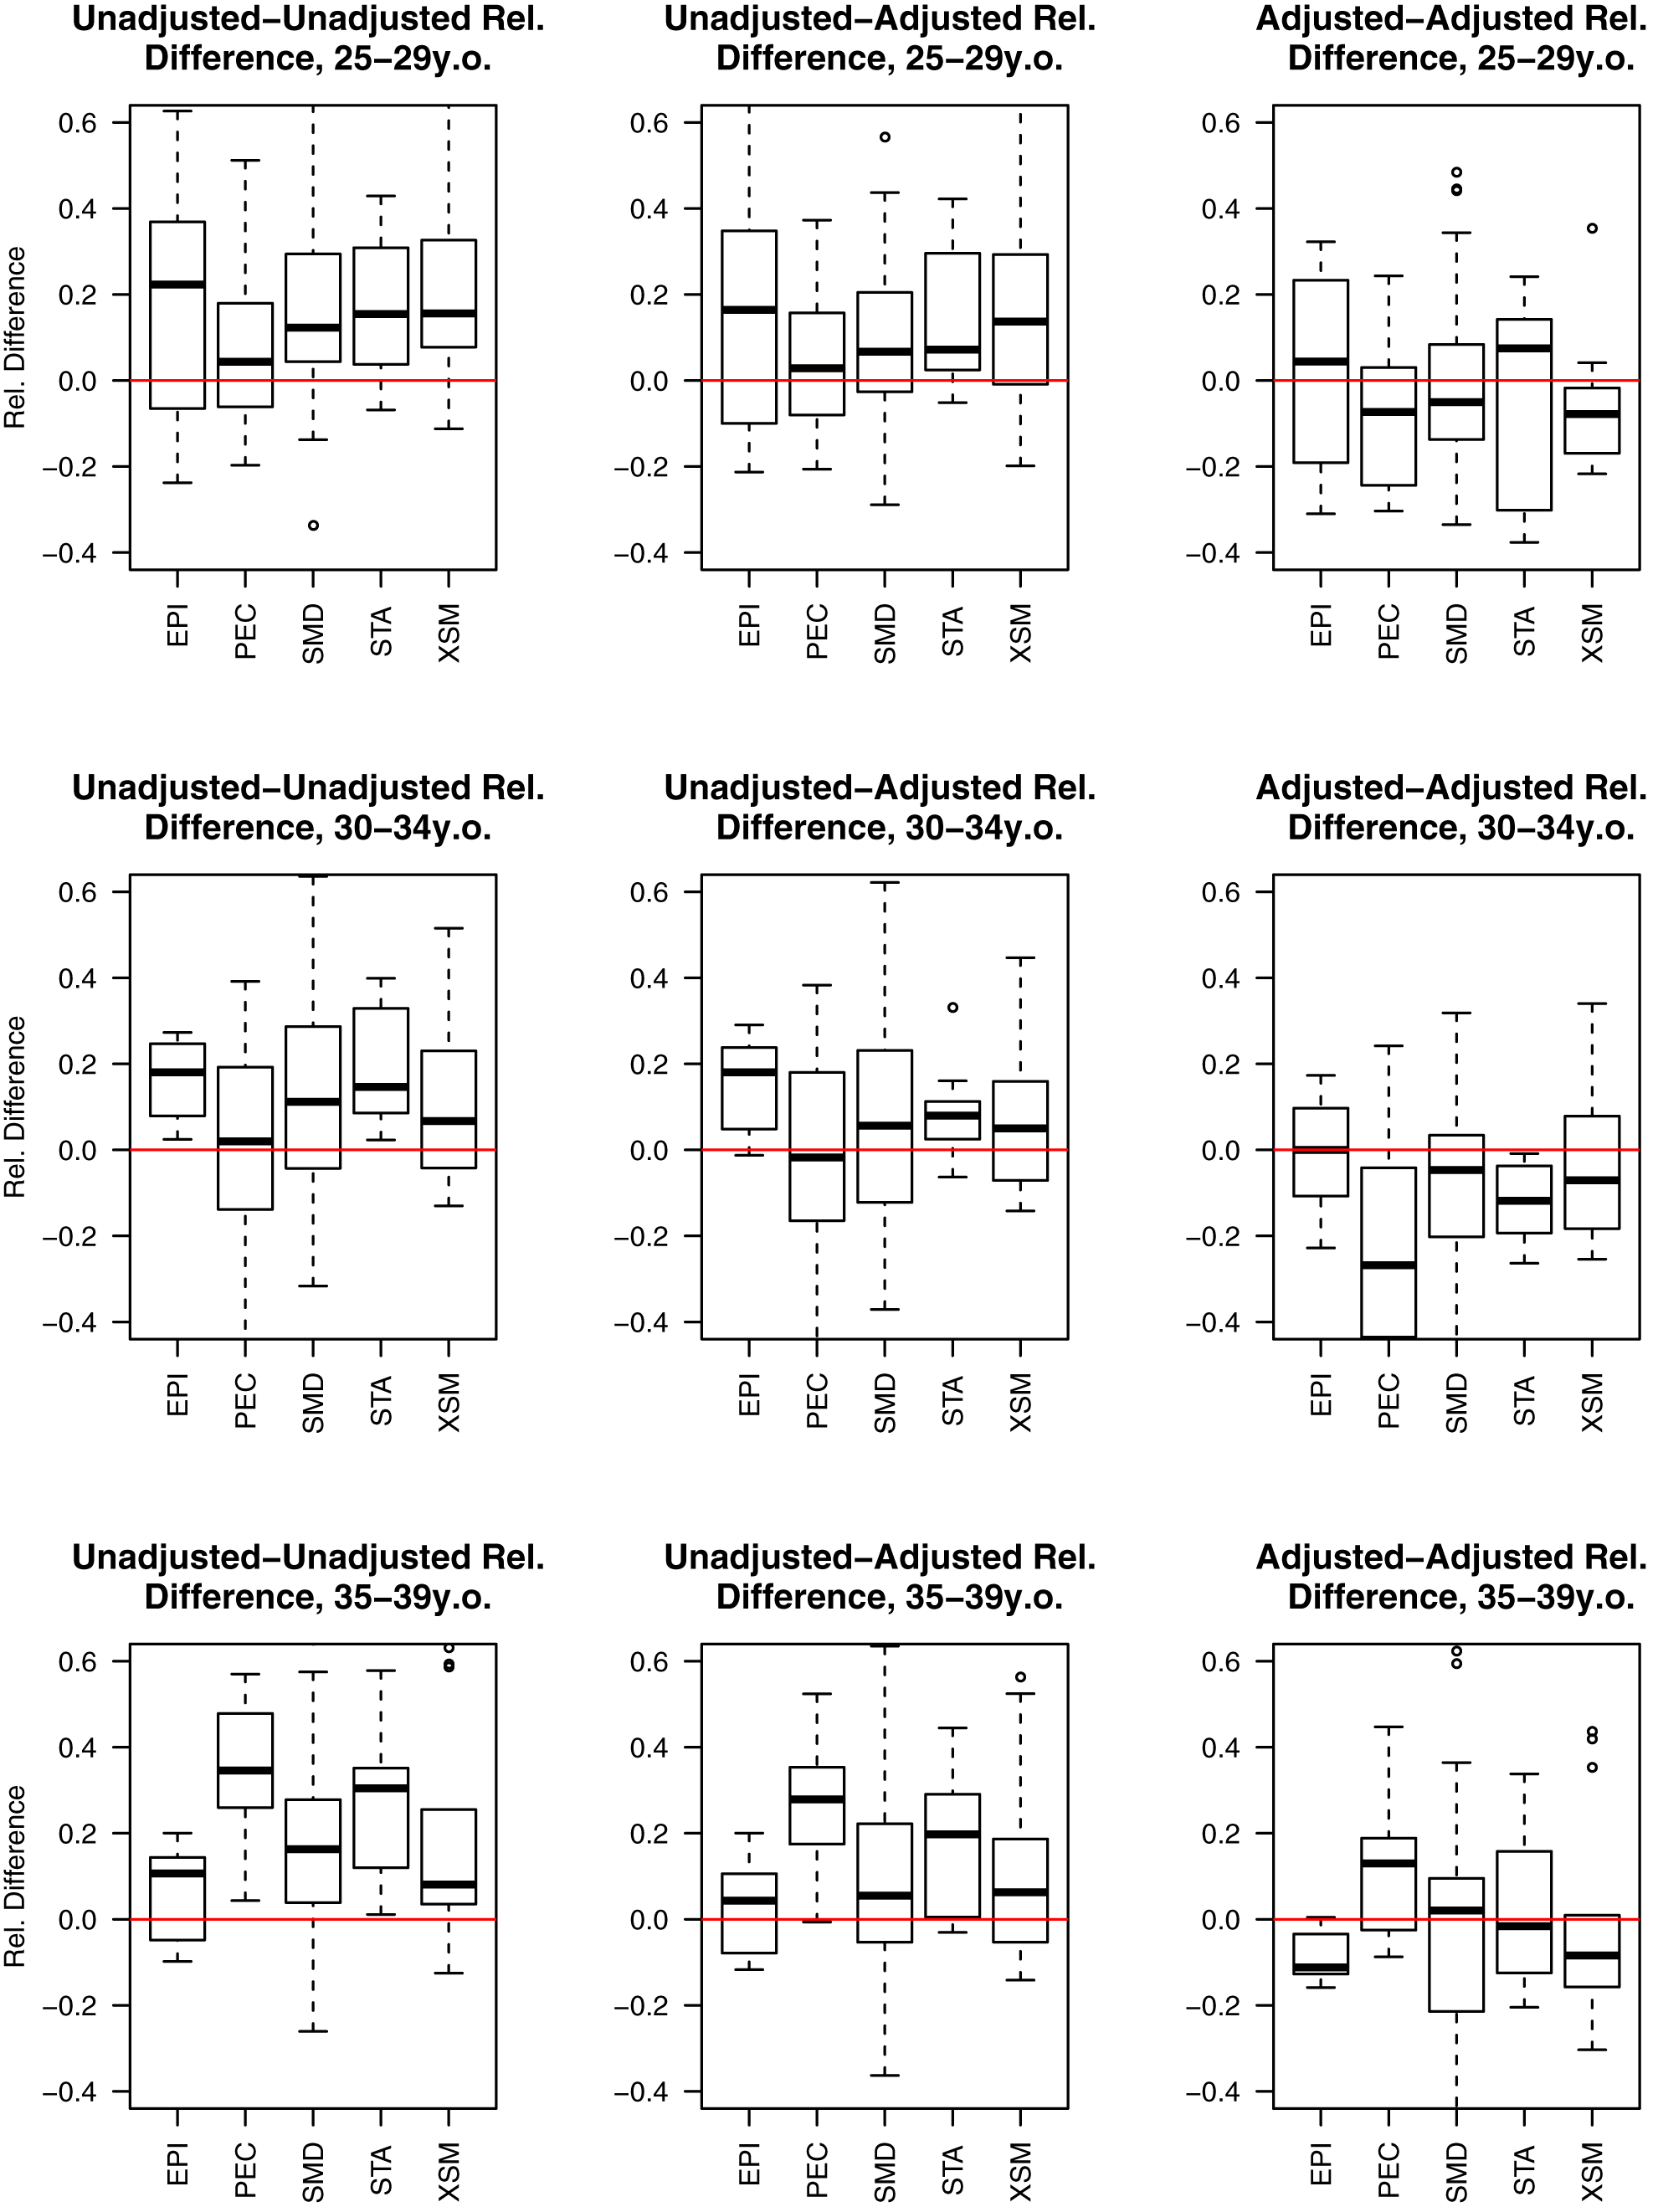 Estimated relative paired differences for under-five mortality rates for developing countries organized by Garenne and Gakusi <em class=&quot;ref&quot;>[<b>14</b>]</em> categories.